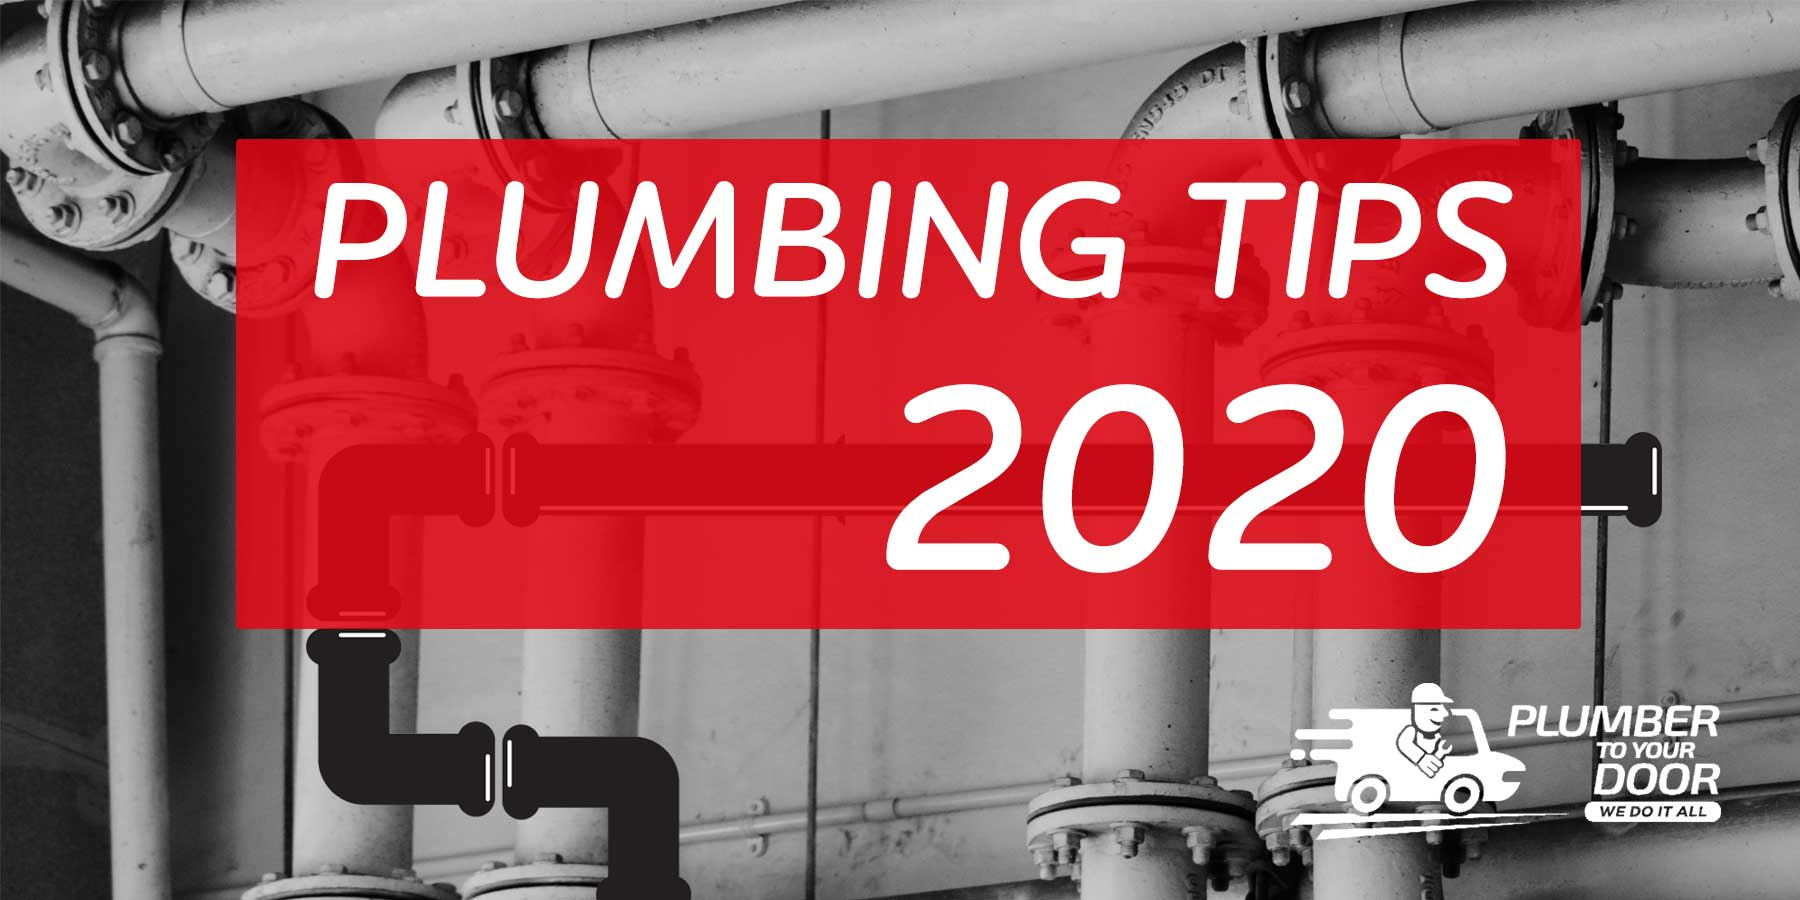 New plumbing tips for households